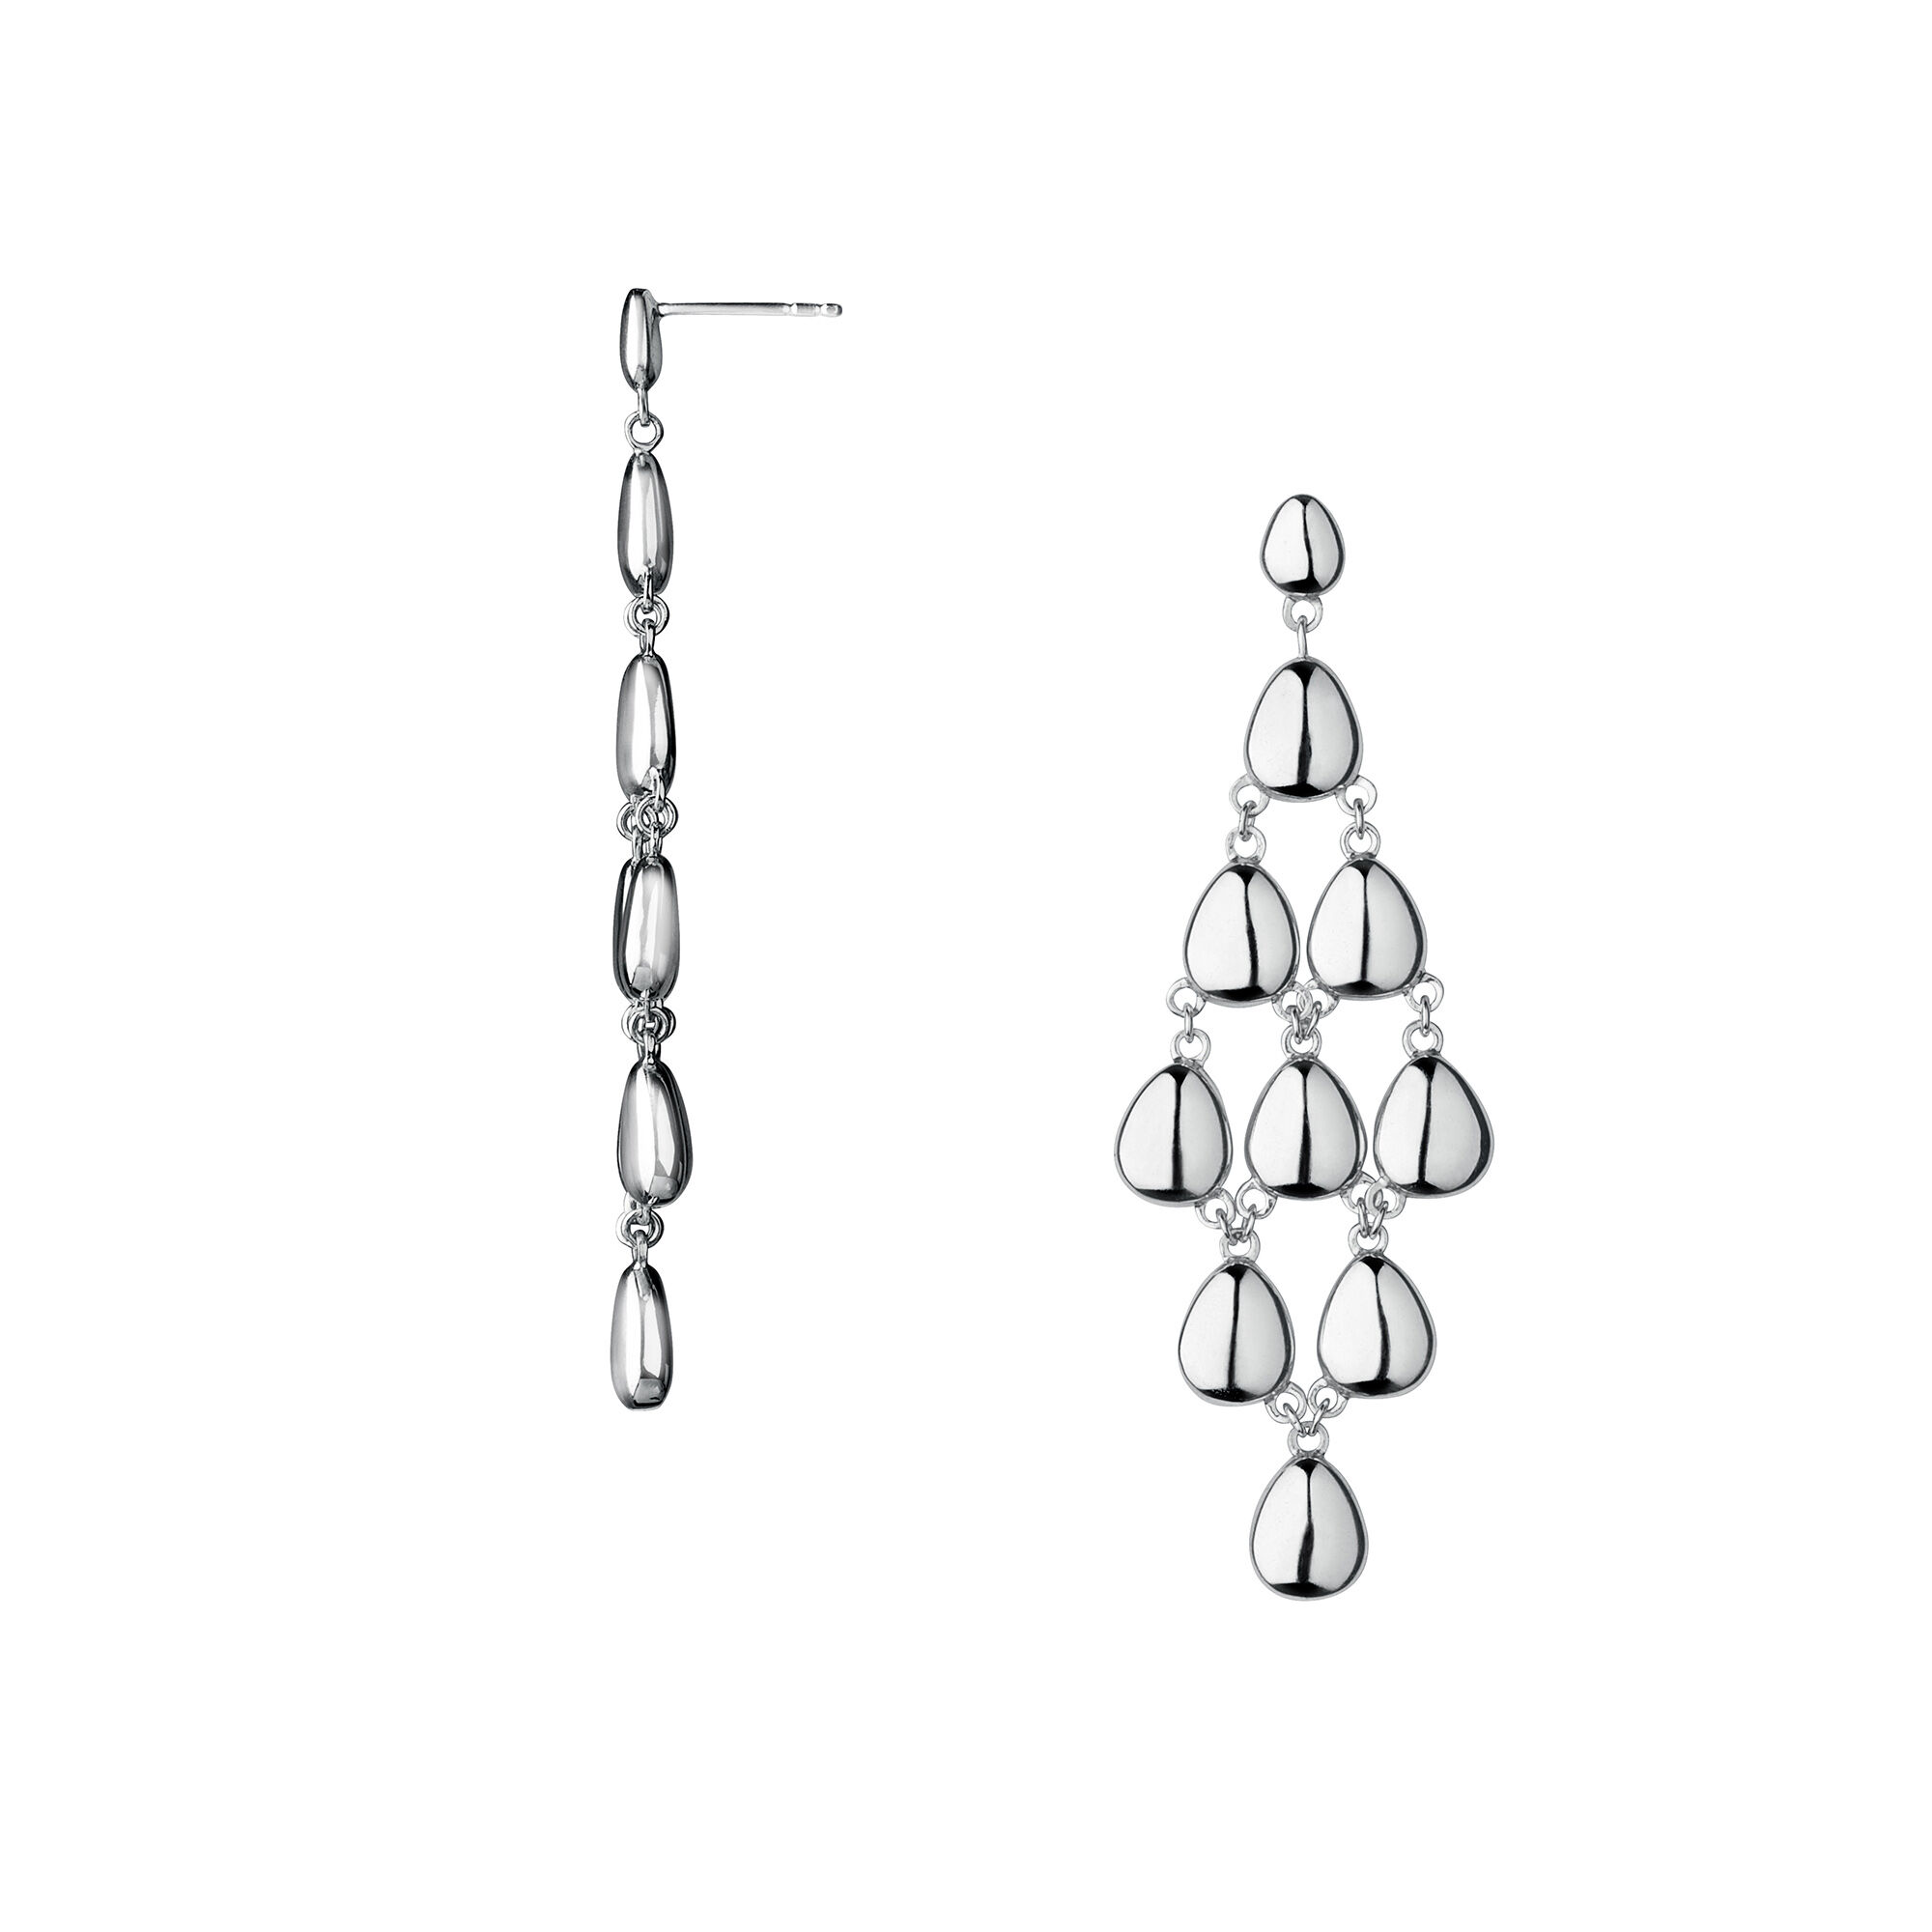 sky wild products earrings light night jewellery chandelier